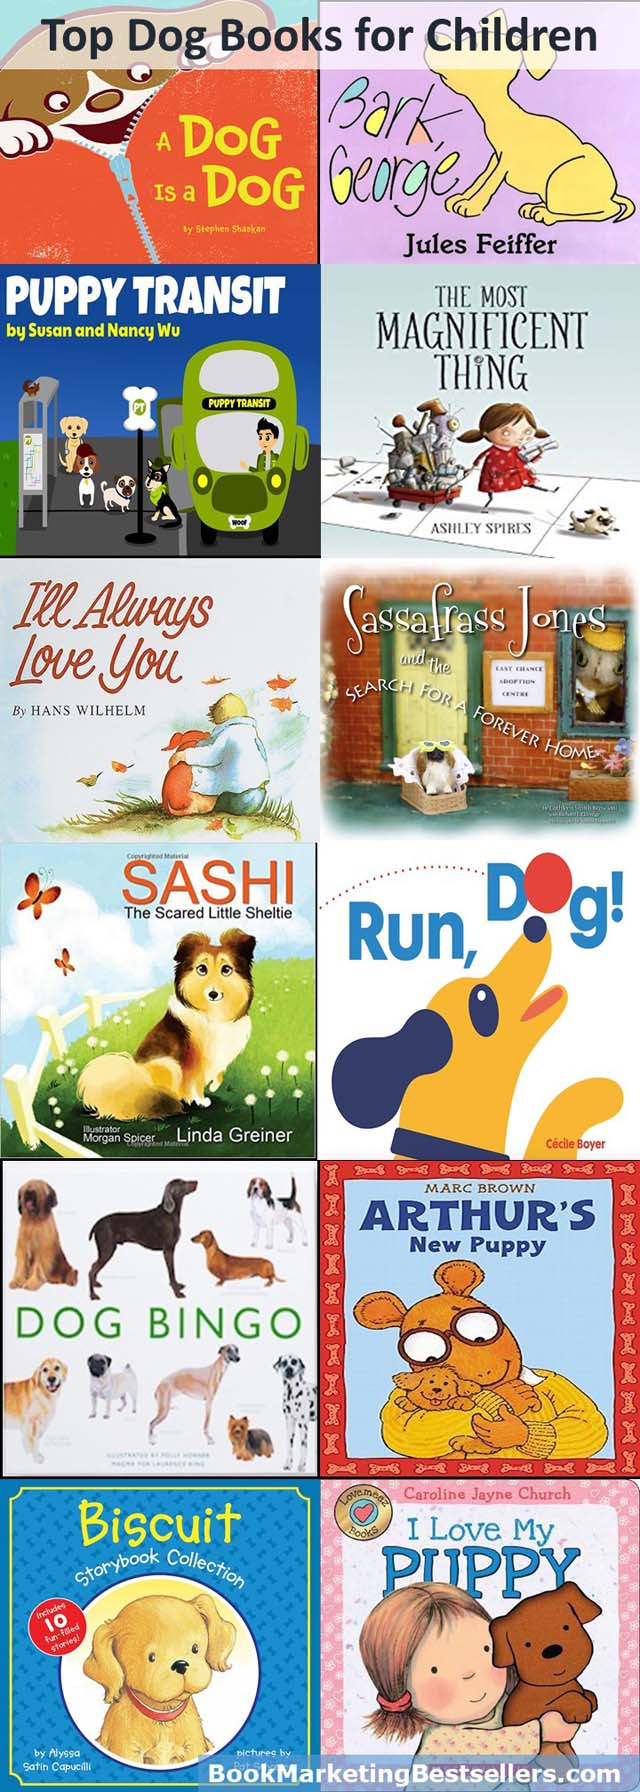 Top Dog Books for Kids: Check them out. You and your children and your grandchildren and your nieces and nephews will be glad you did.